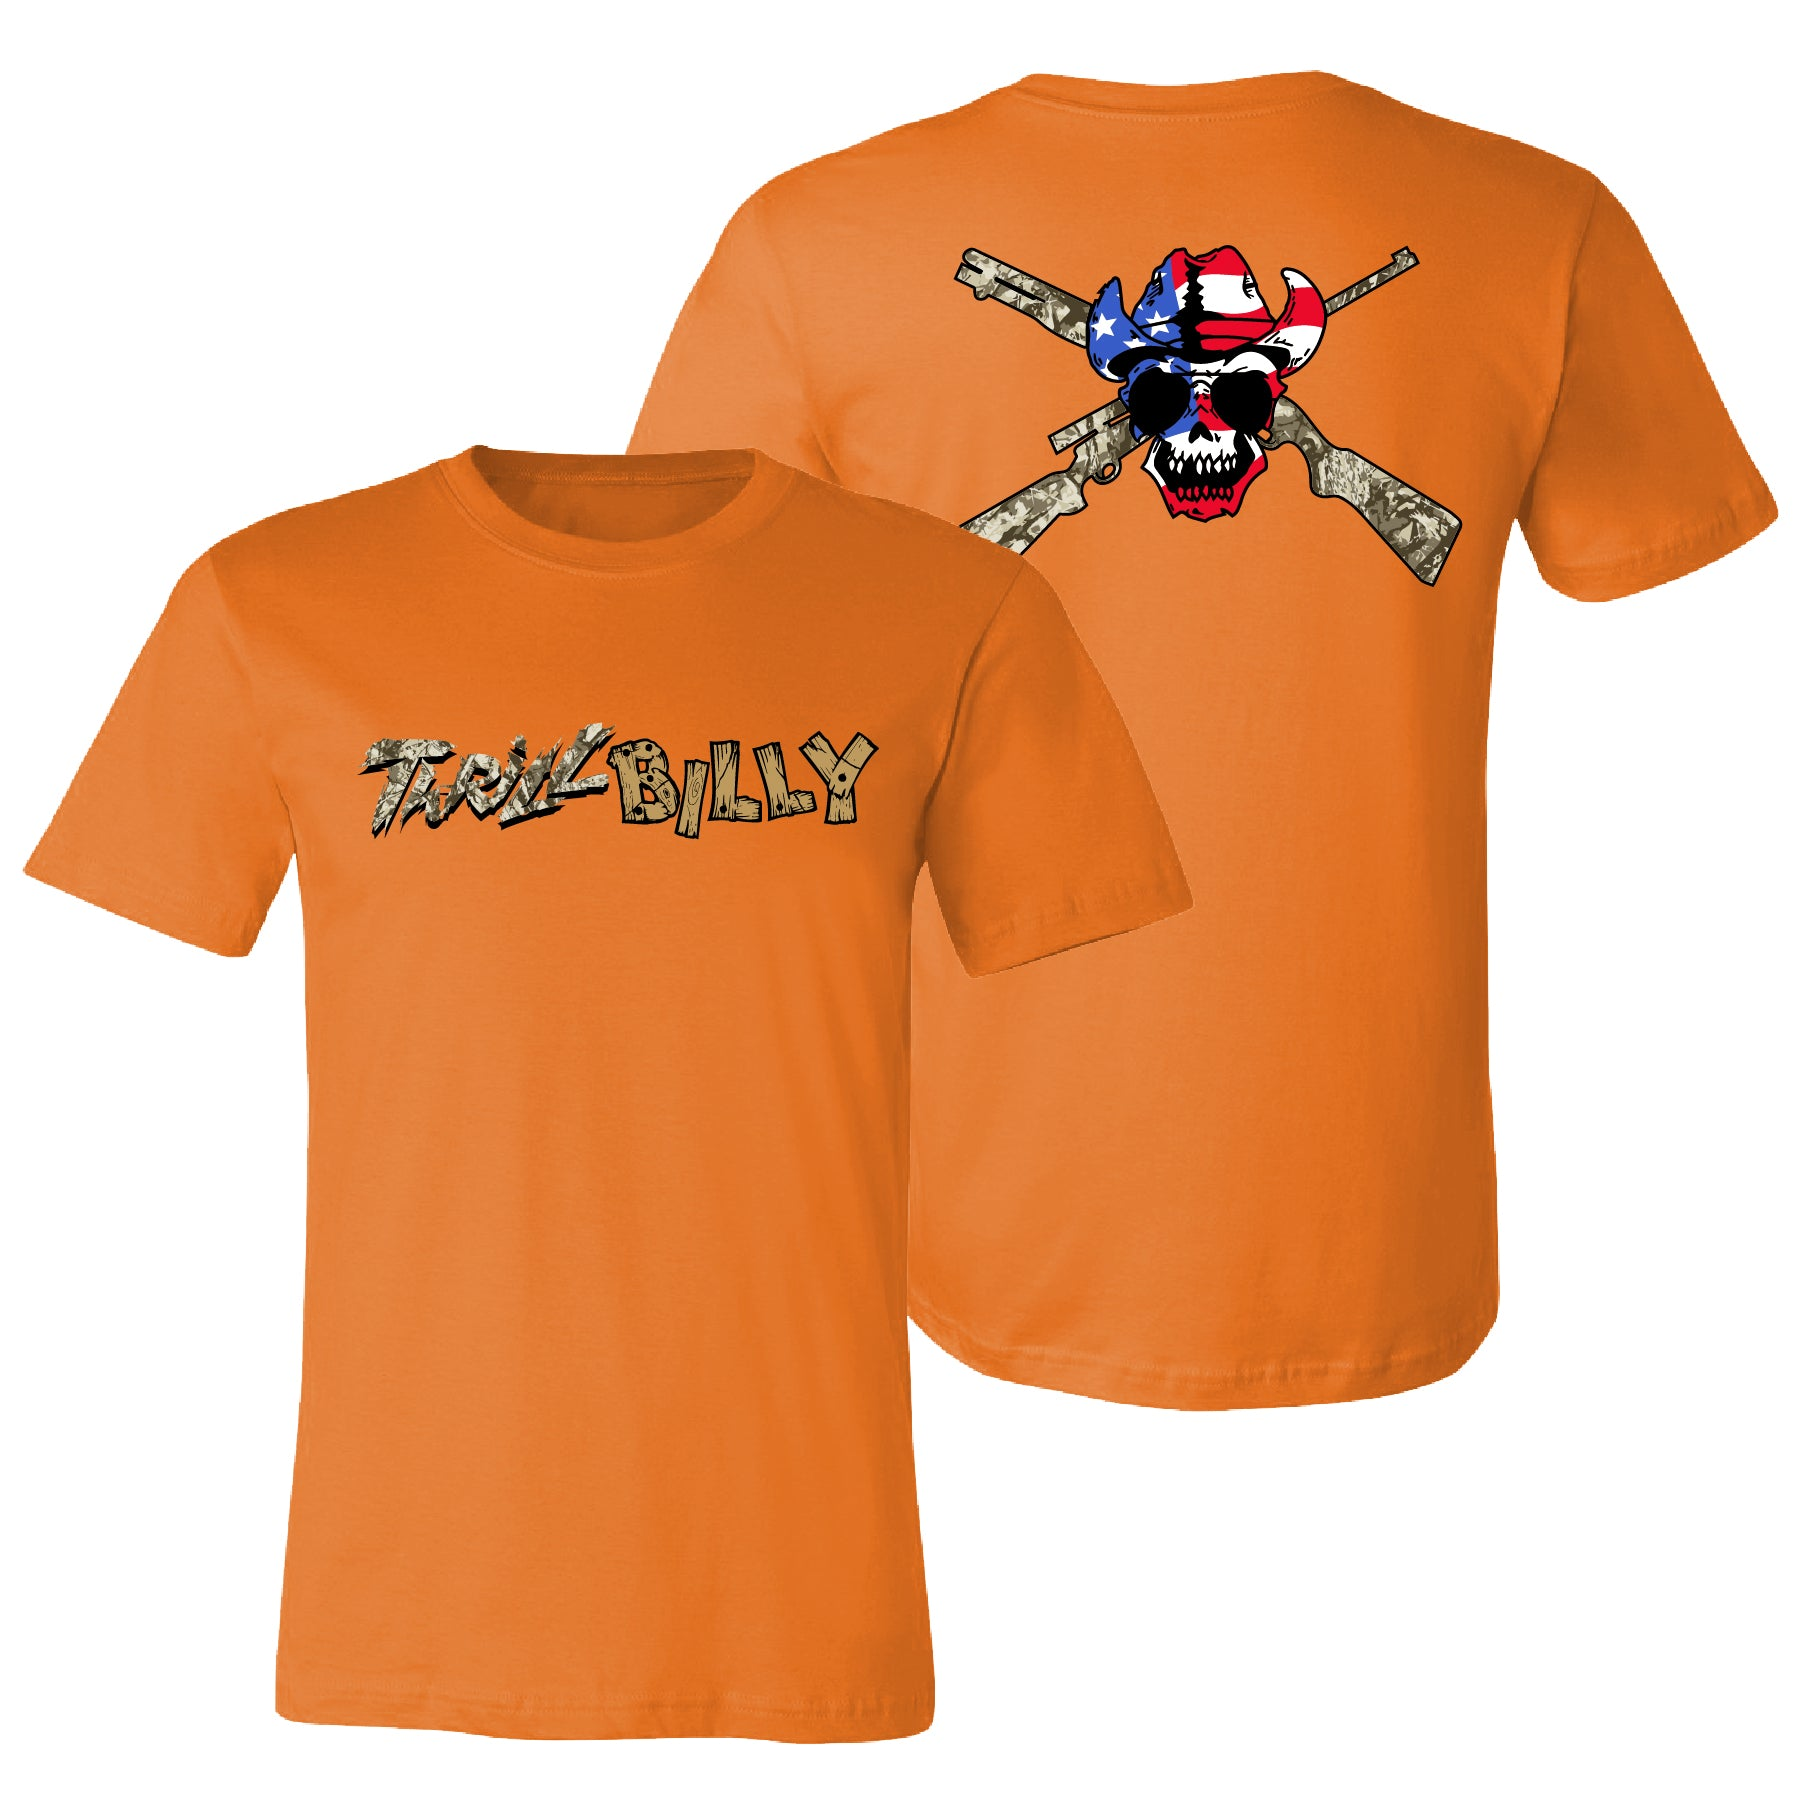 Thrill Billy Orange T-Shirt